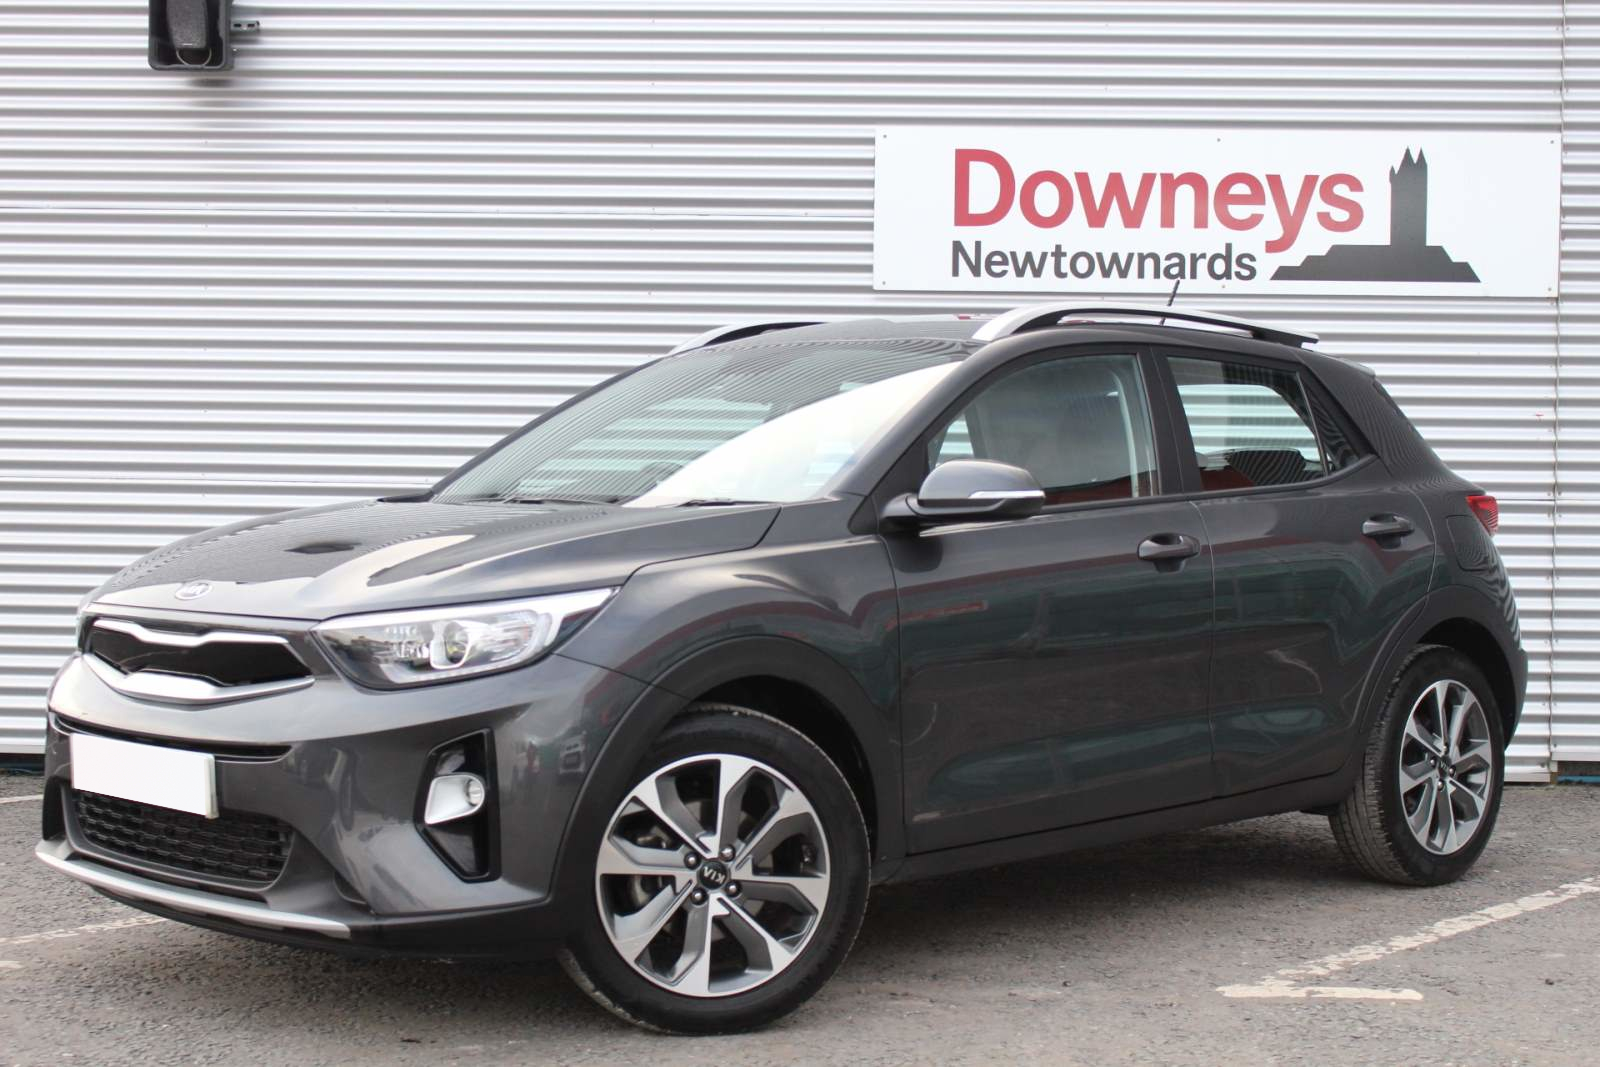 Kia STONIC 2 ISG 1.6 CRDI FULL KIA WARRANTY UNTIL MARCH 2025